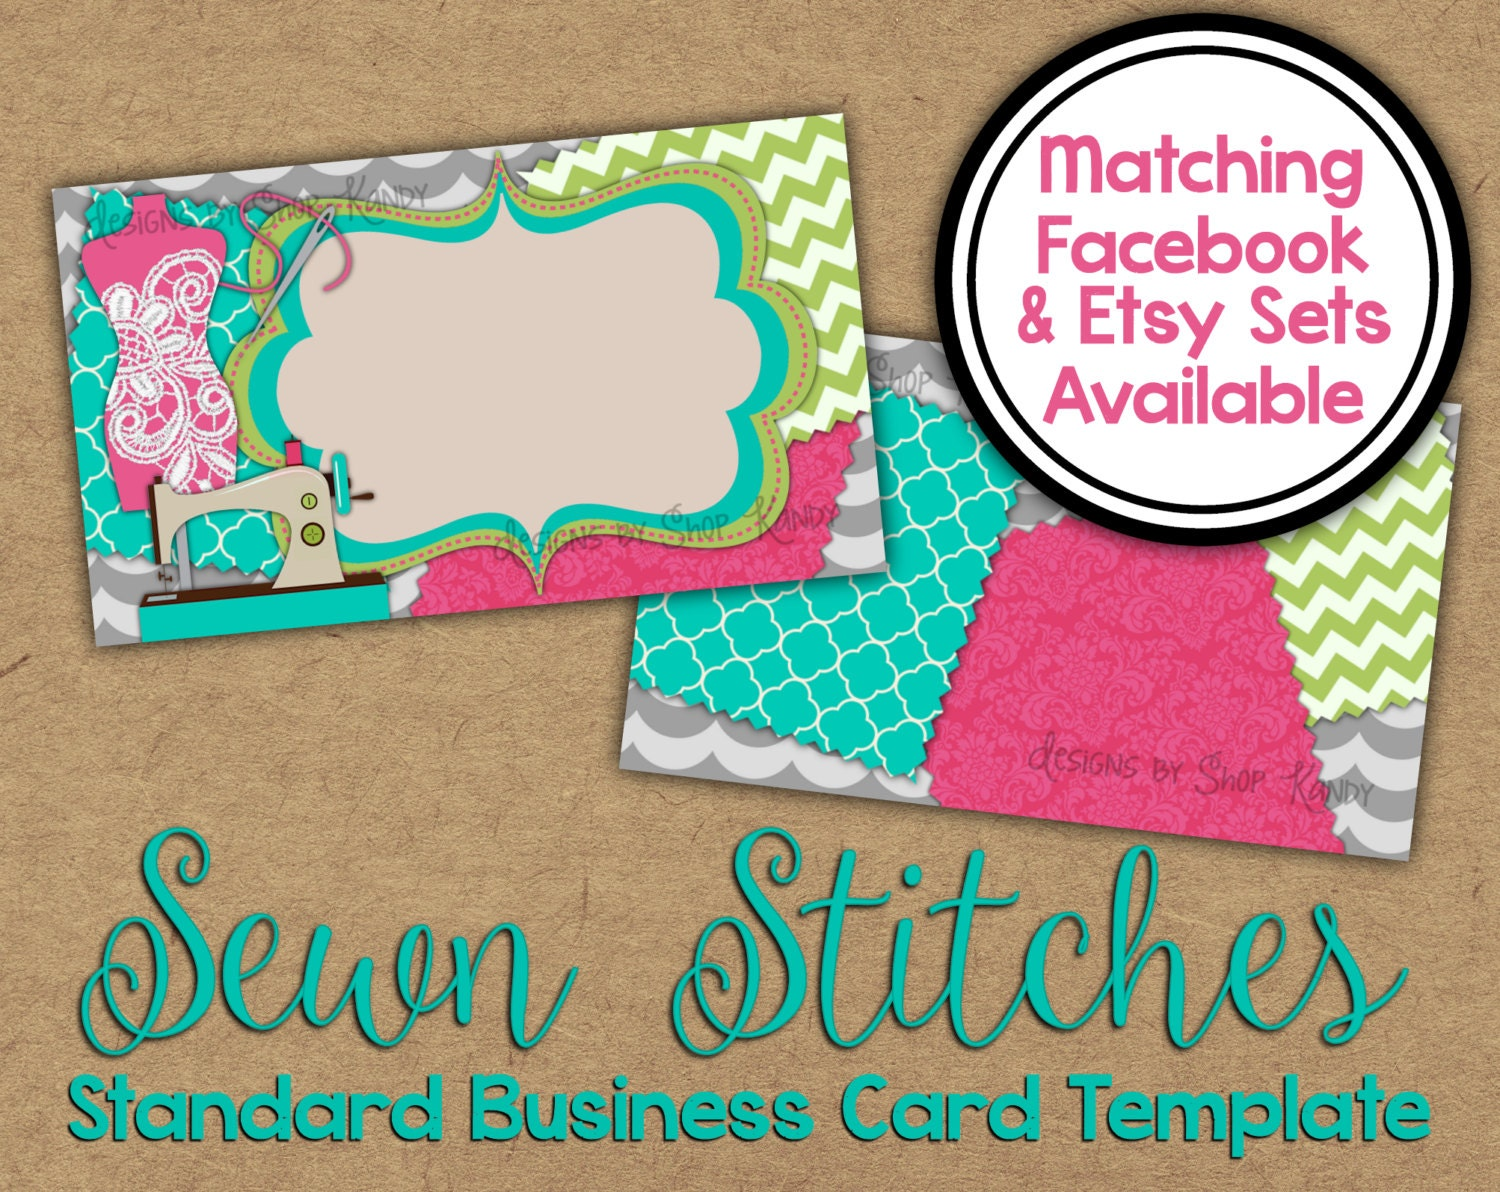 Sewn Stitches Business Card 2 sided Sewing Business Card